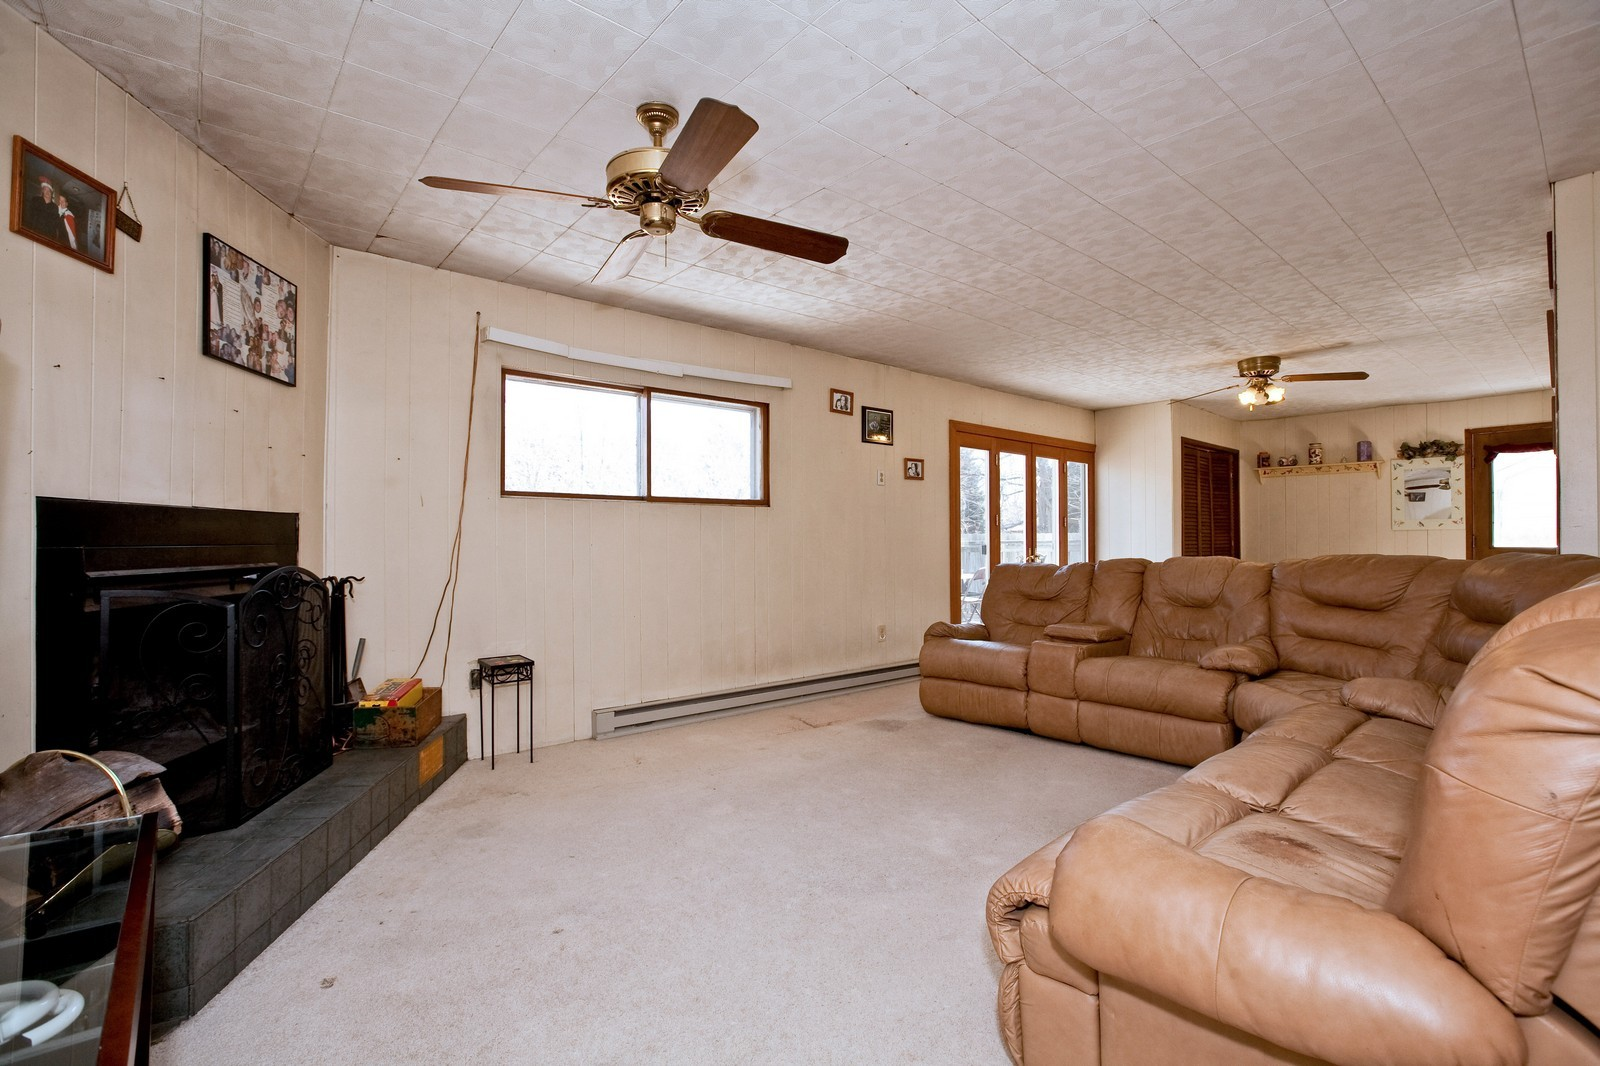 Real Estate Photography - 521 N Park, Westmont, IL, 60559 - Location 2